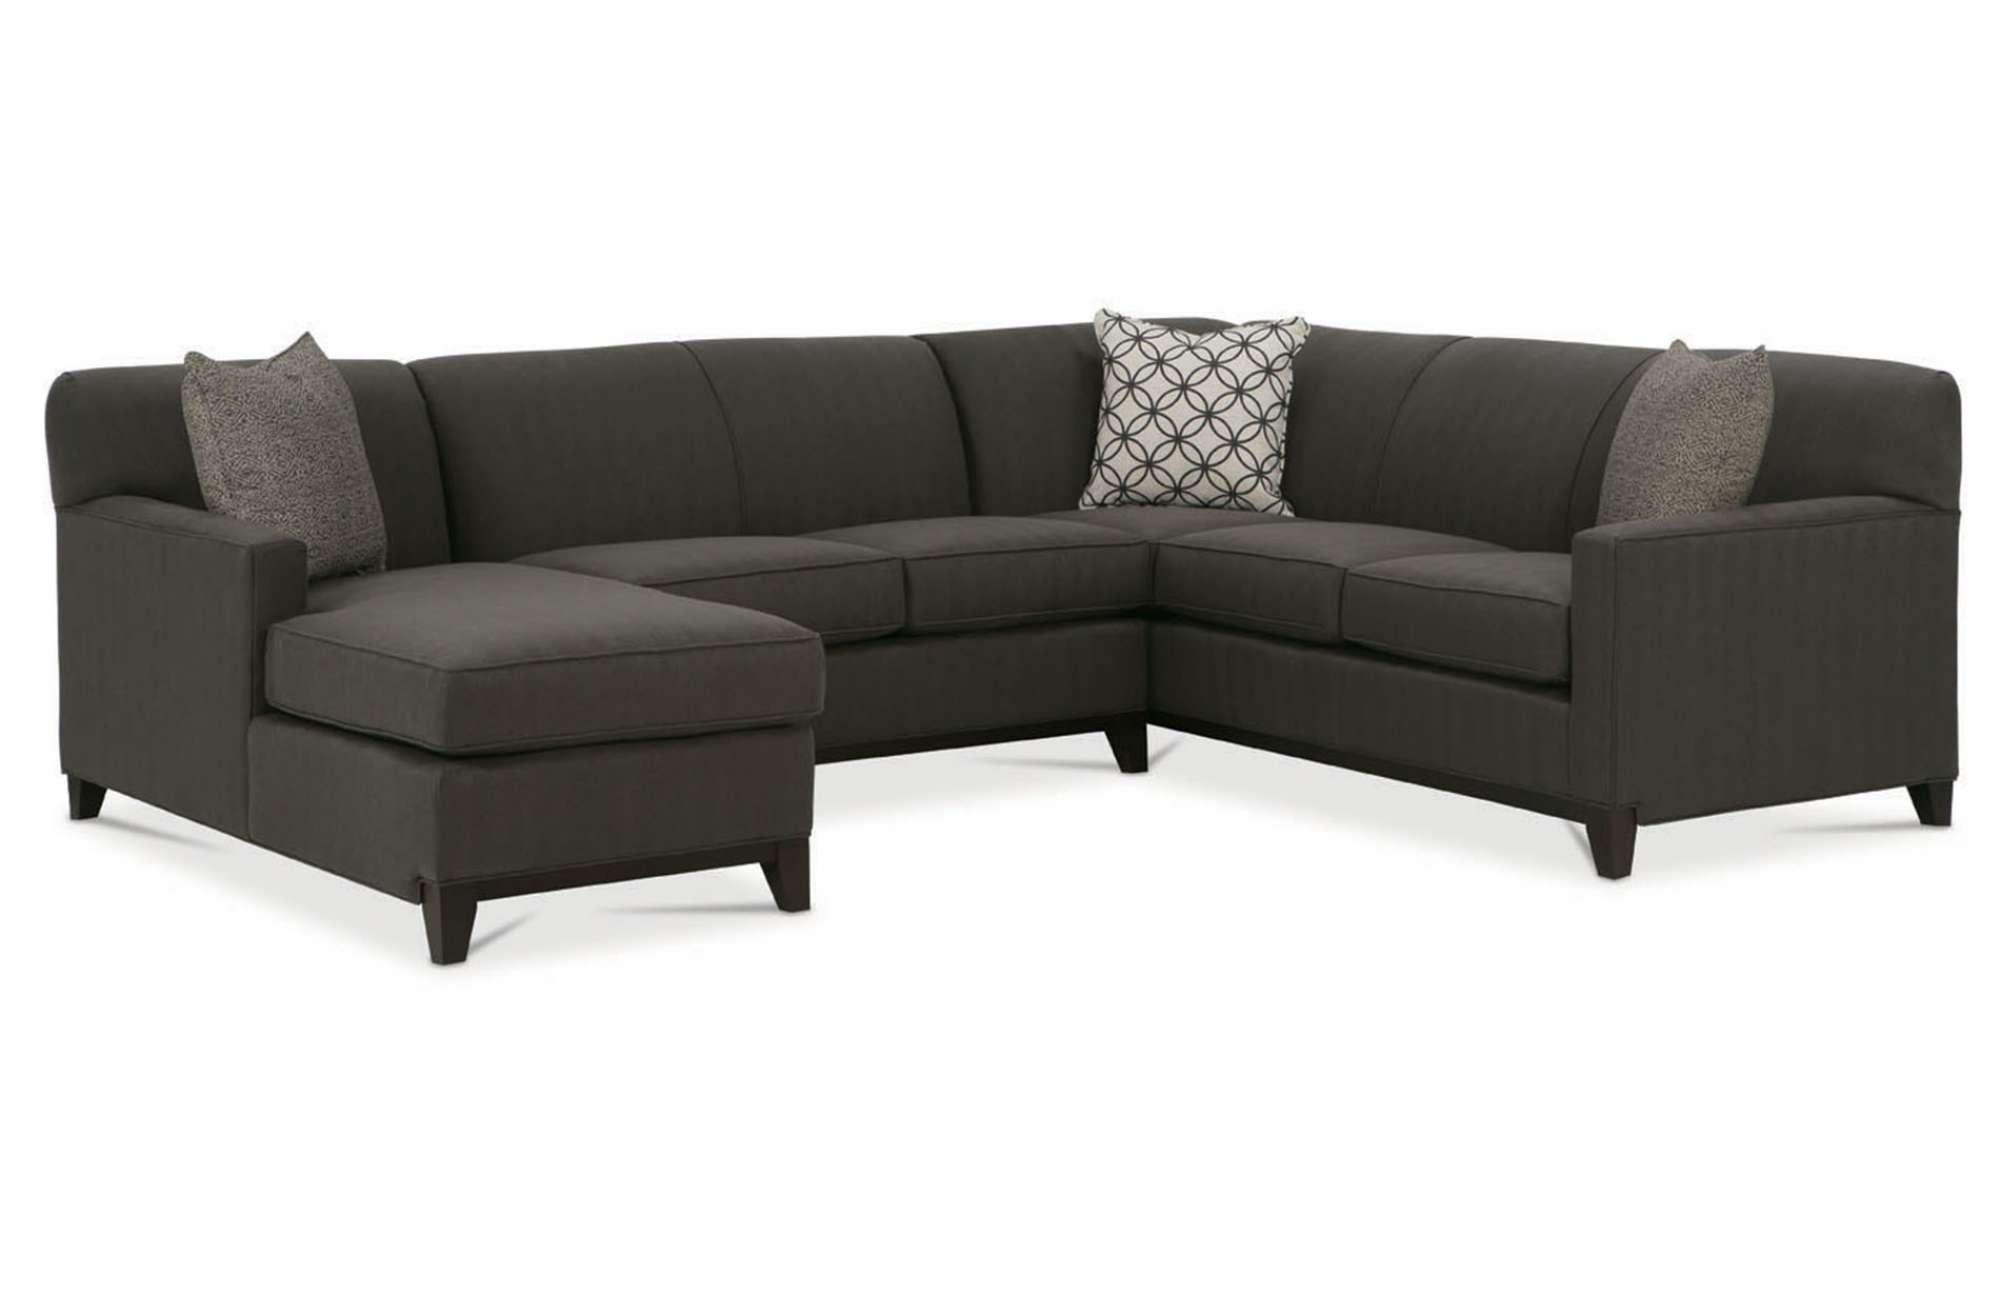 Sectionals | Concepts Furniture – Part 3 Inside Rowe Sectional Sofas (View 5 of 20)